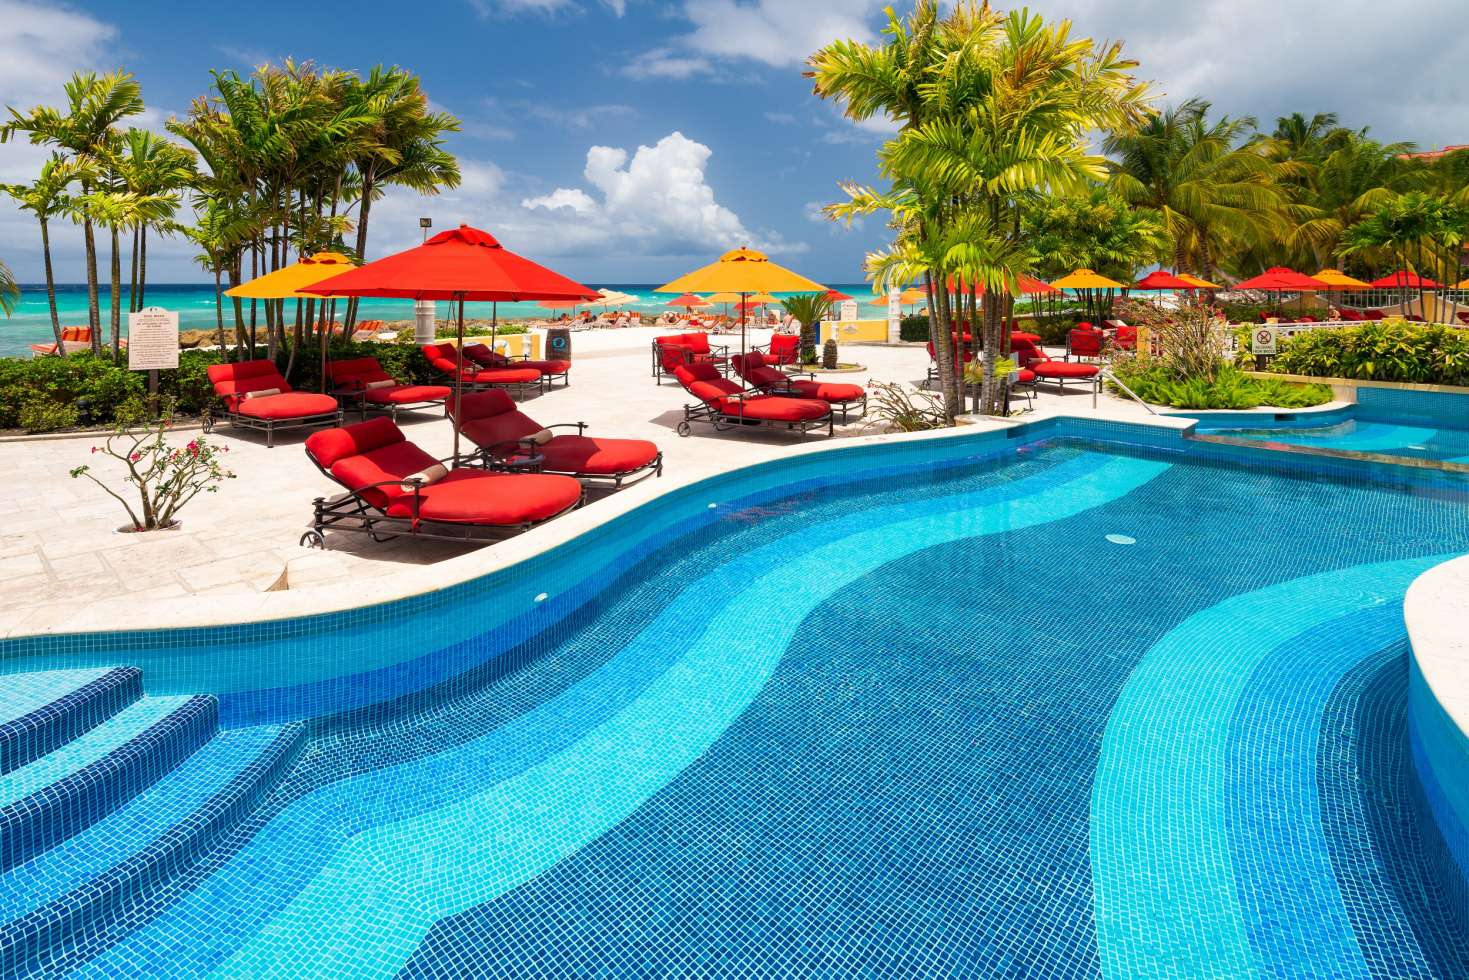 Ocean Two by Ocean Hotels, Saint Lawrence Gap, Barbados